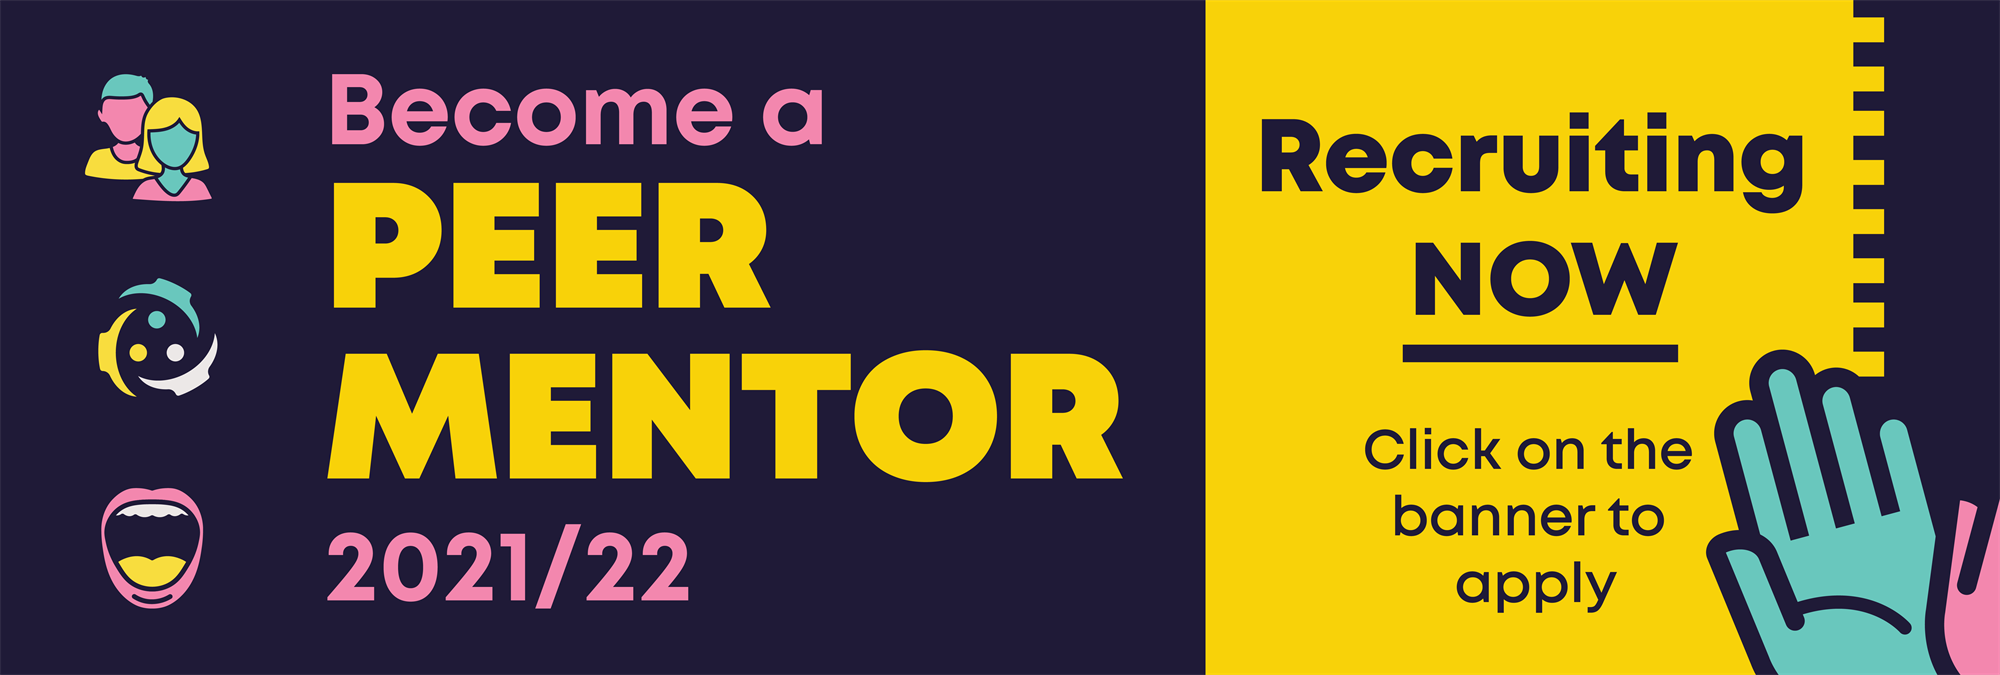 Become a Peer Mentor 2021/22. Recruiting now. Click on the banner to apply.